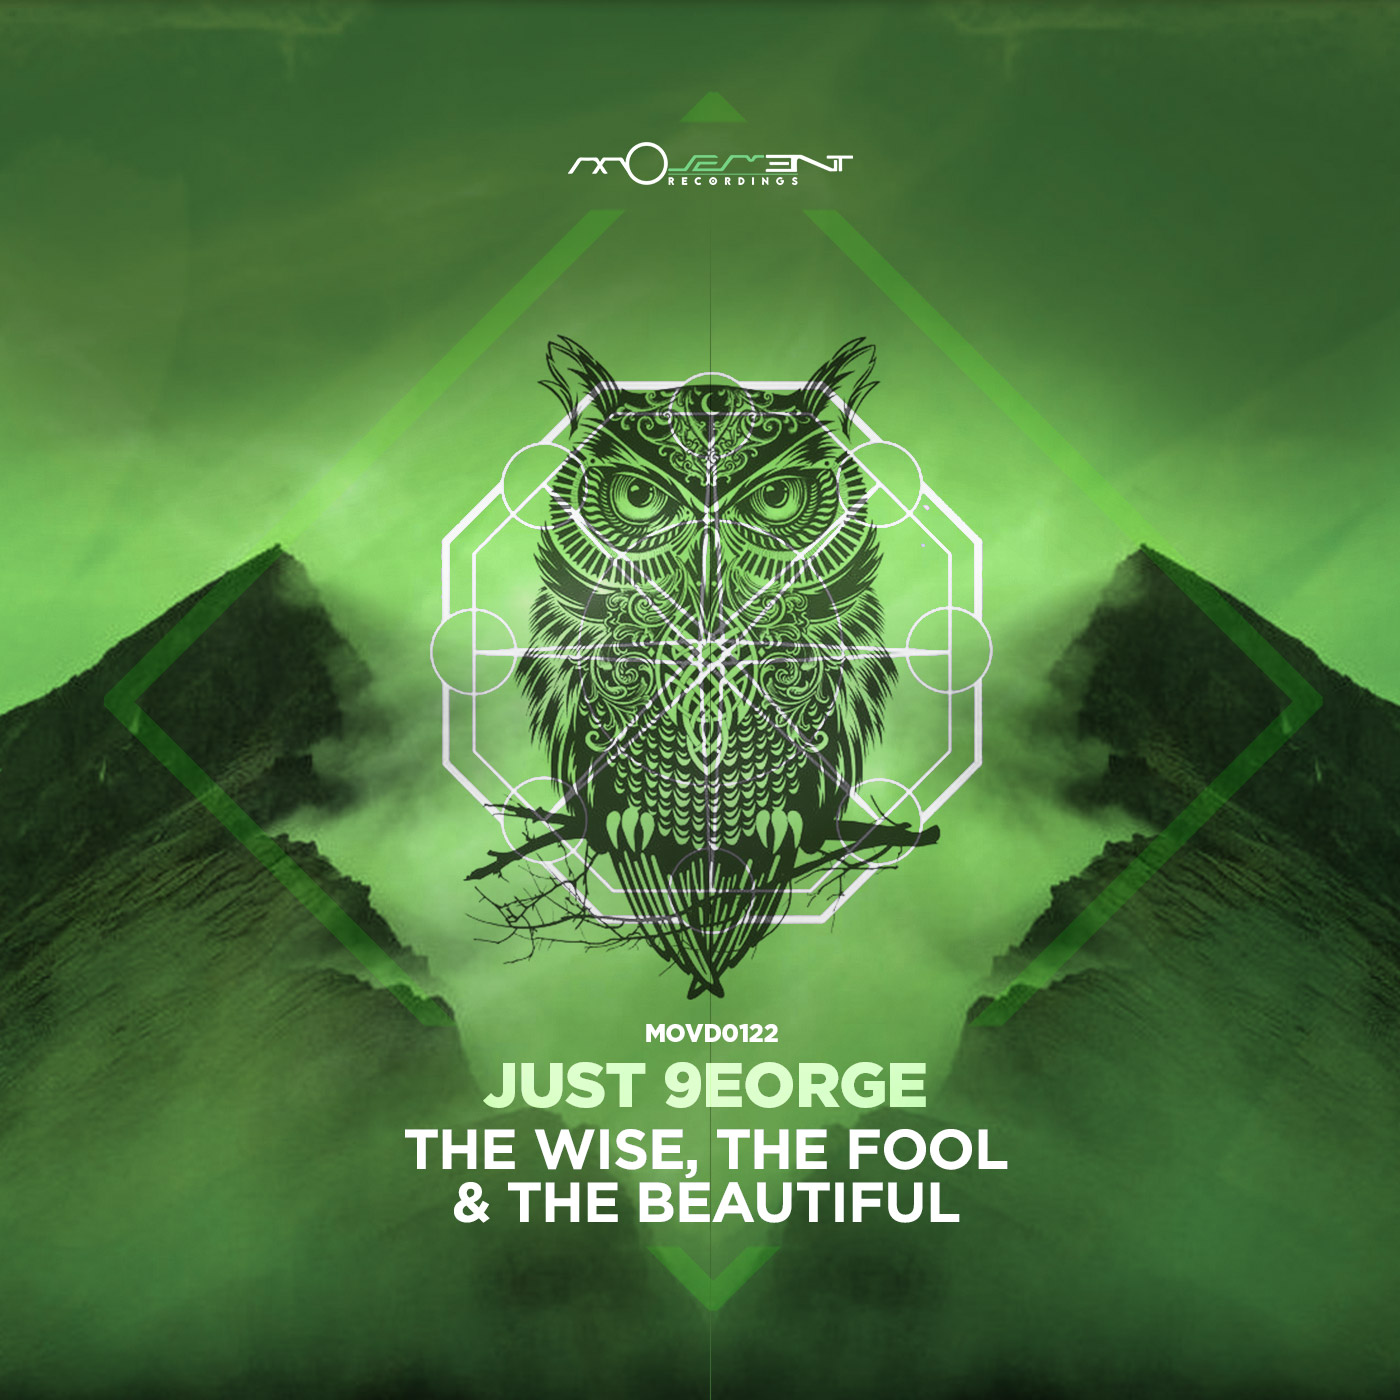 Just 9eorge - The Wise, The Fool and The Beautiful (Movement Records)